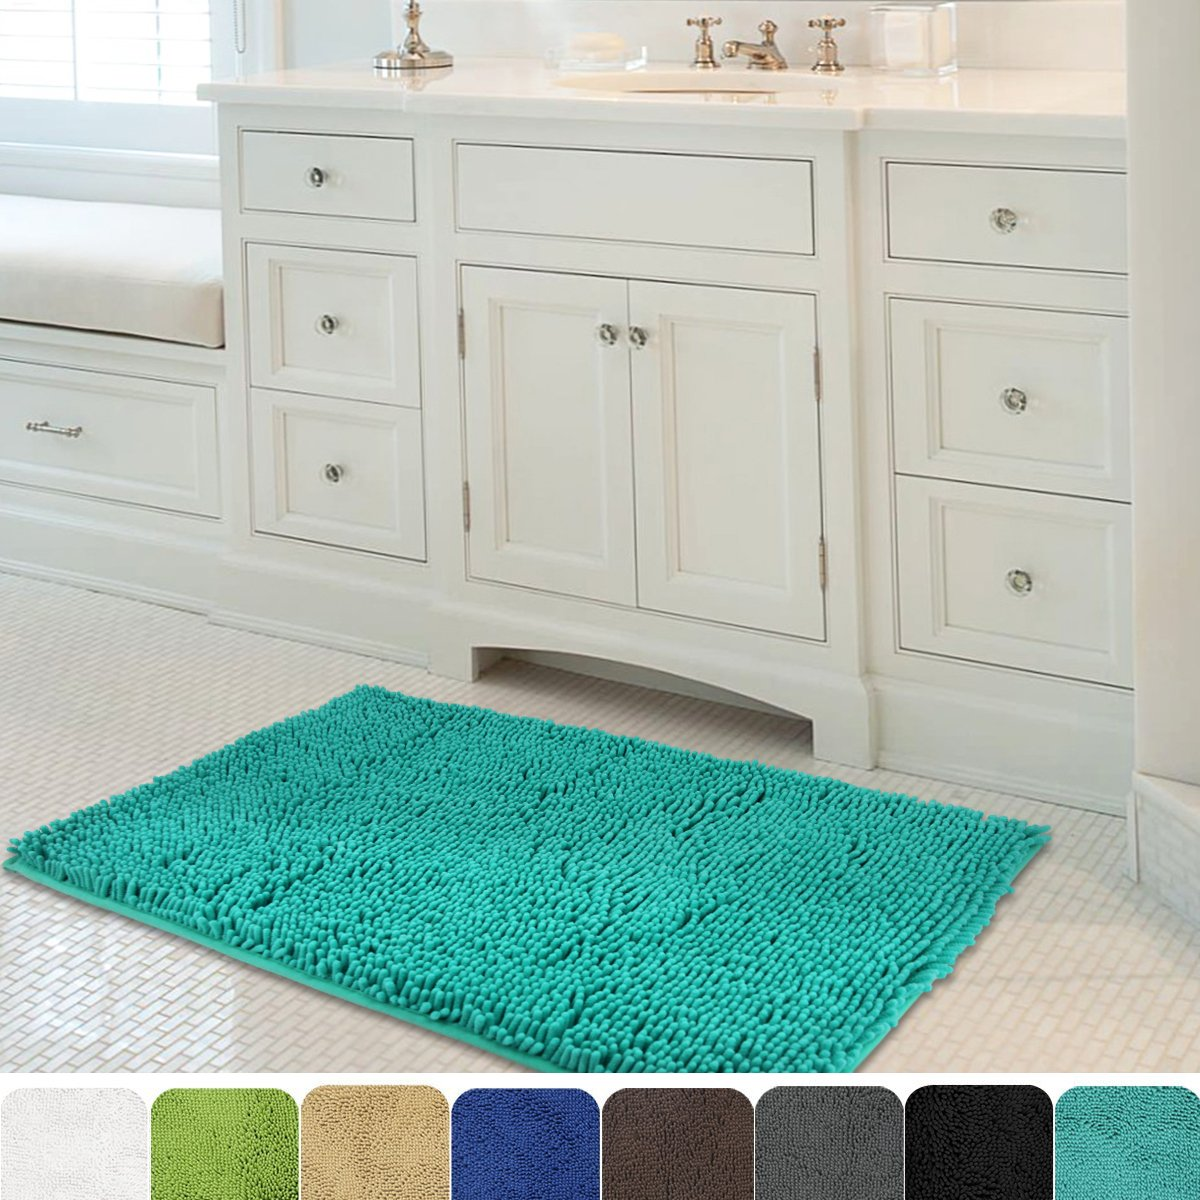 Best Rated in Bath Rugs & Helpful Customer Reviews - Amazon.com